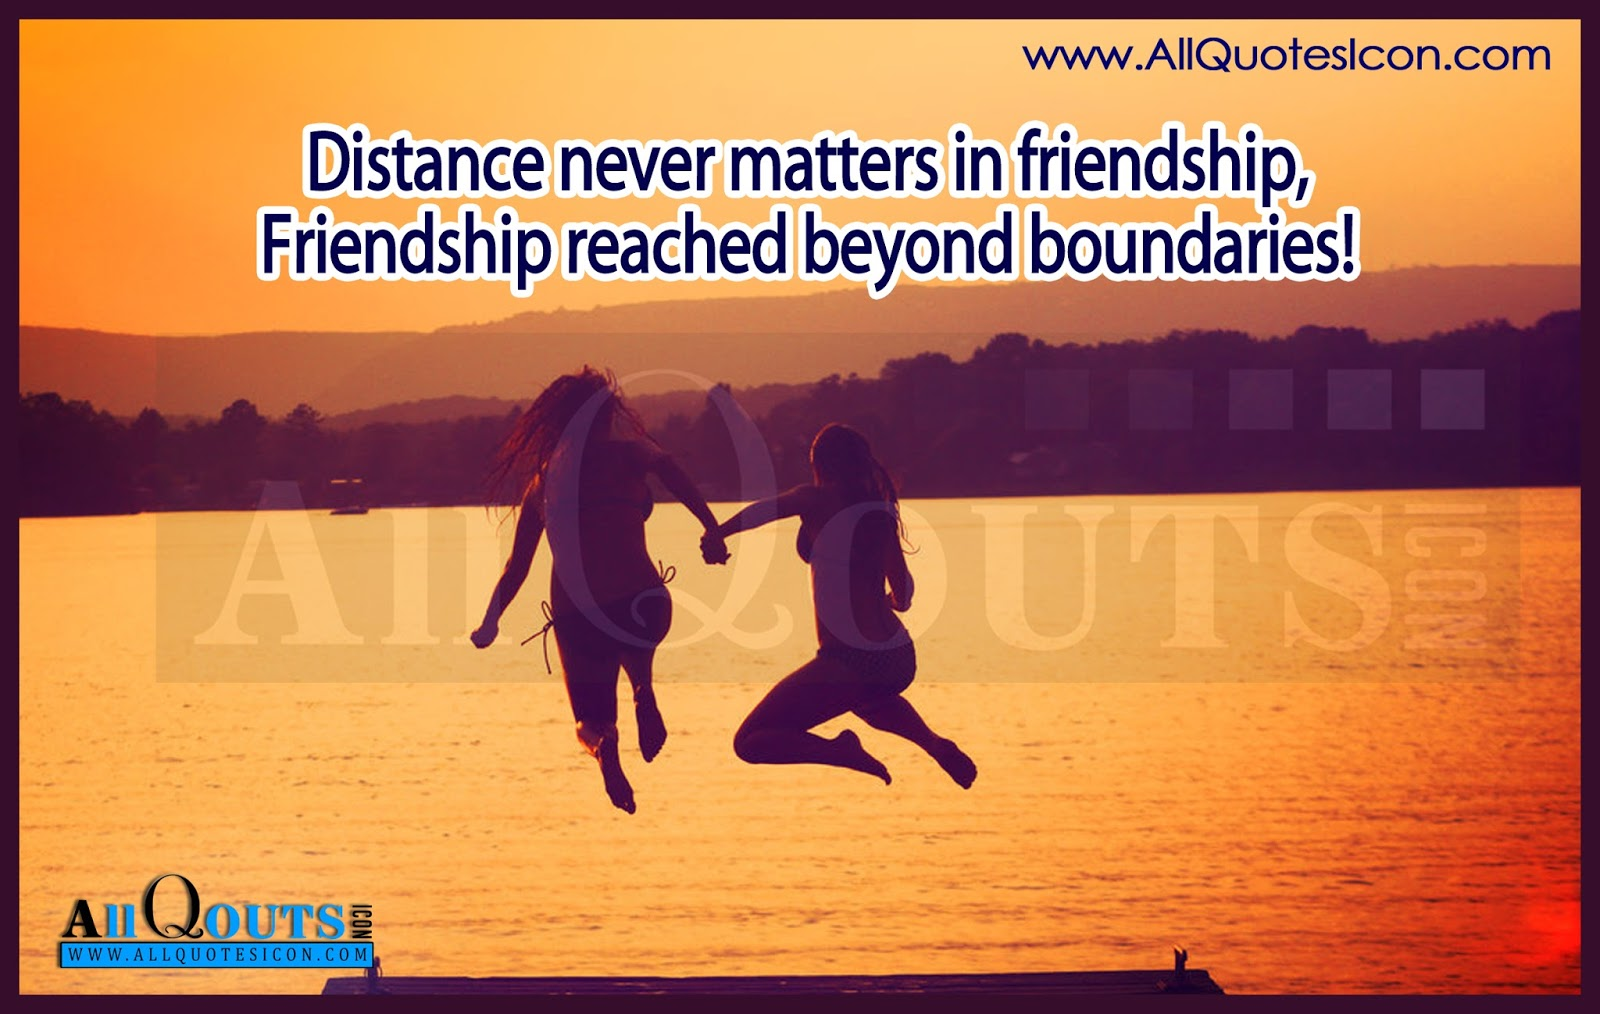 English Quotes About Friendship Famous English Quotes About Friendship Best Friendship Quotes In